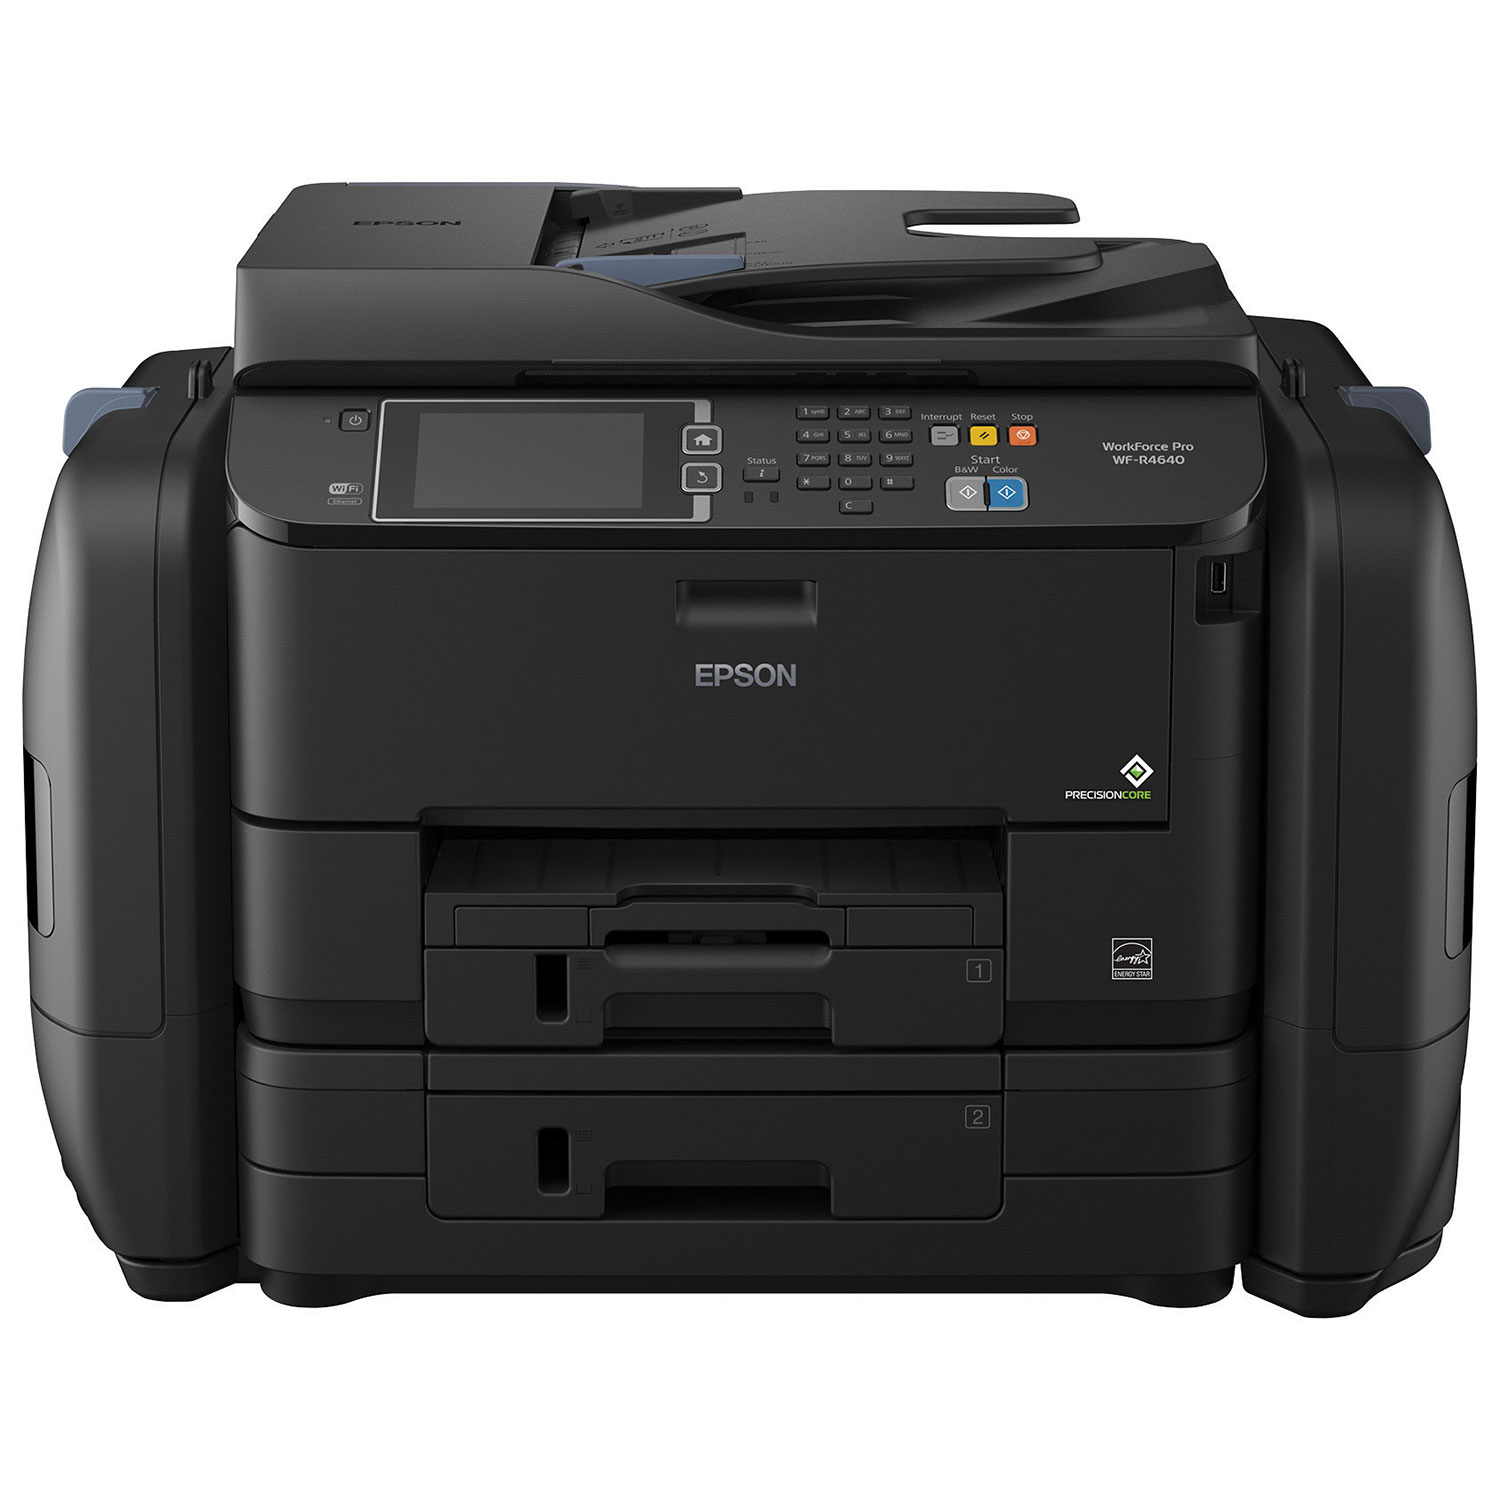 printer buying guide - epson workhorse double sided two trays